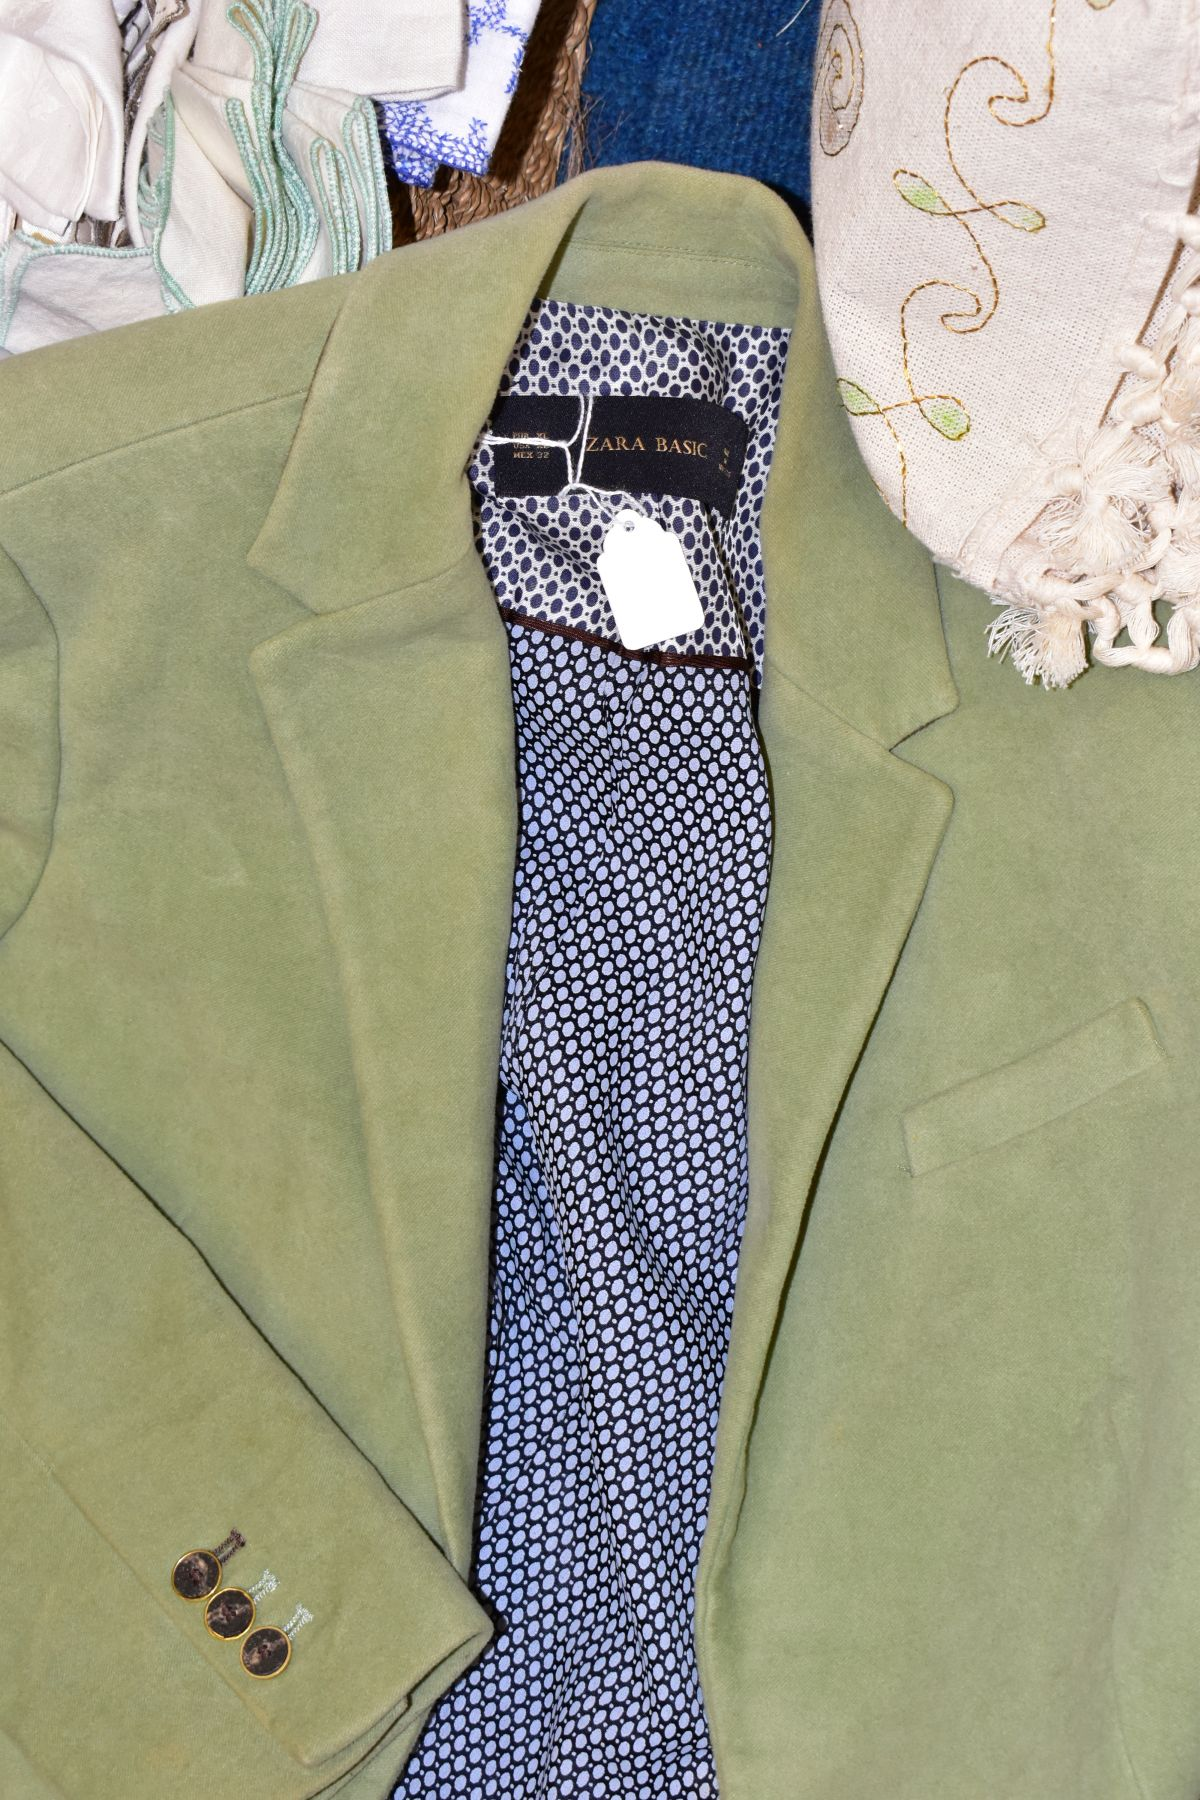 LADIES CLOTHING ETC, to include Planet trouser suit and jacket and skirt both size 12, Zara Basic - Image 3 of 9